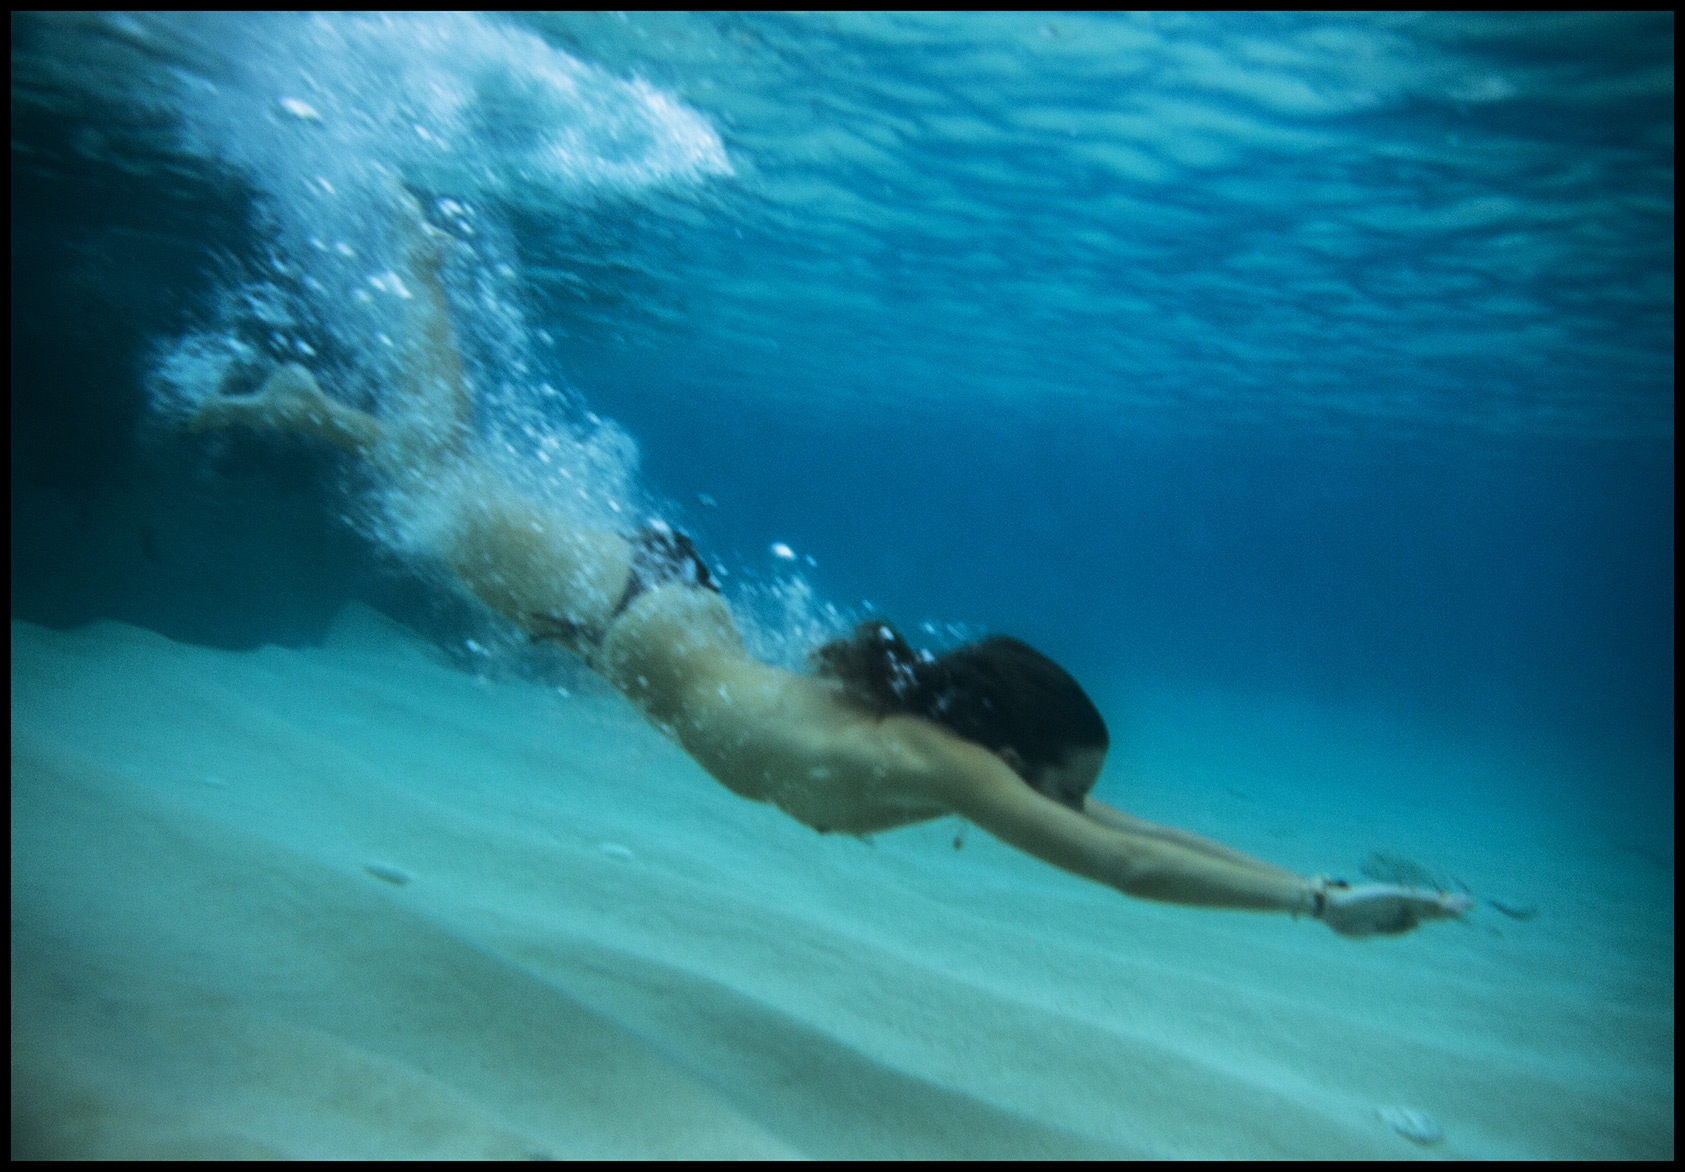 Our model dives underwater and swims adjacent to the ocean's floor